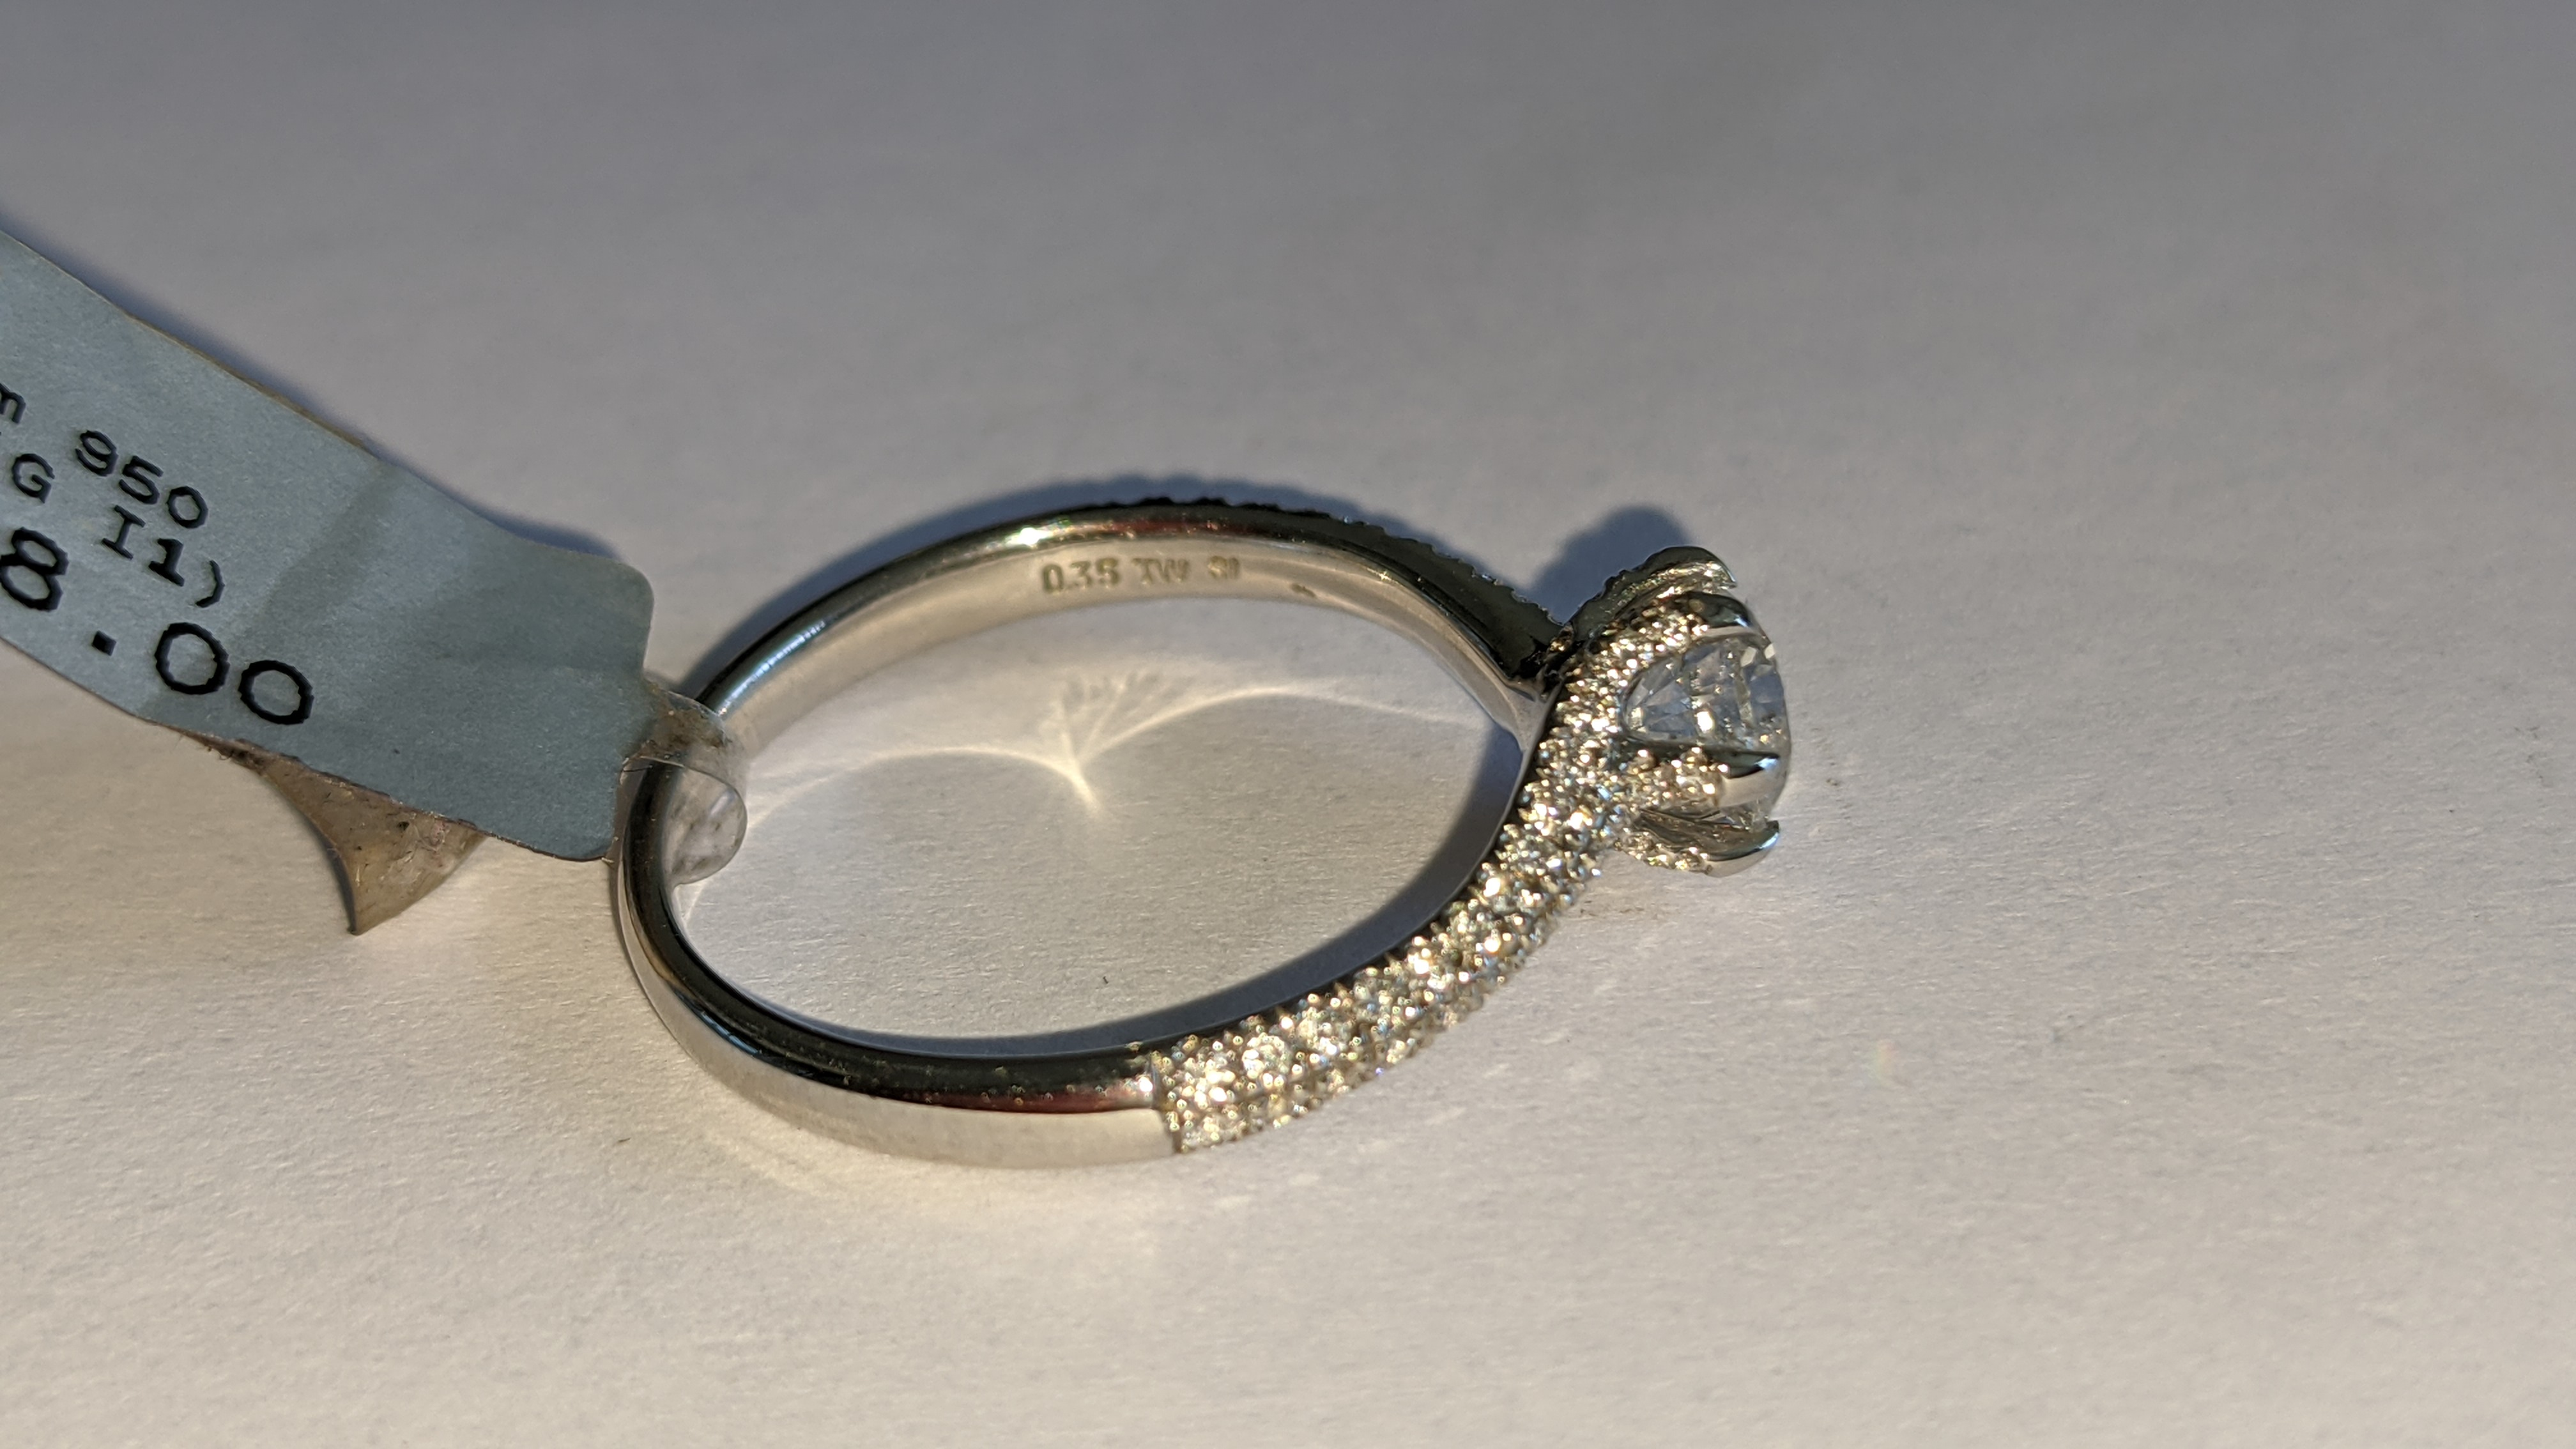 Platinum 950 diamond ring with 0.55ct central stone & 0.348ct of smaller stones on the shoulders. RR - Image 10 of 16